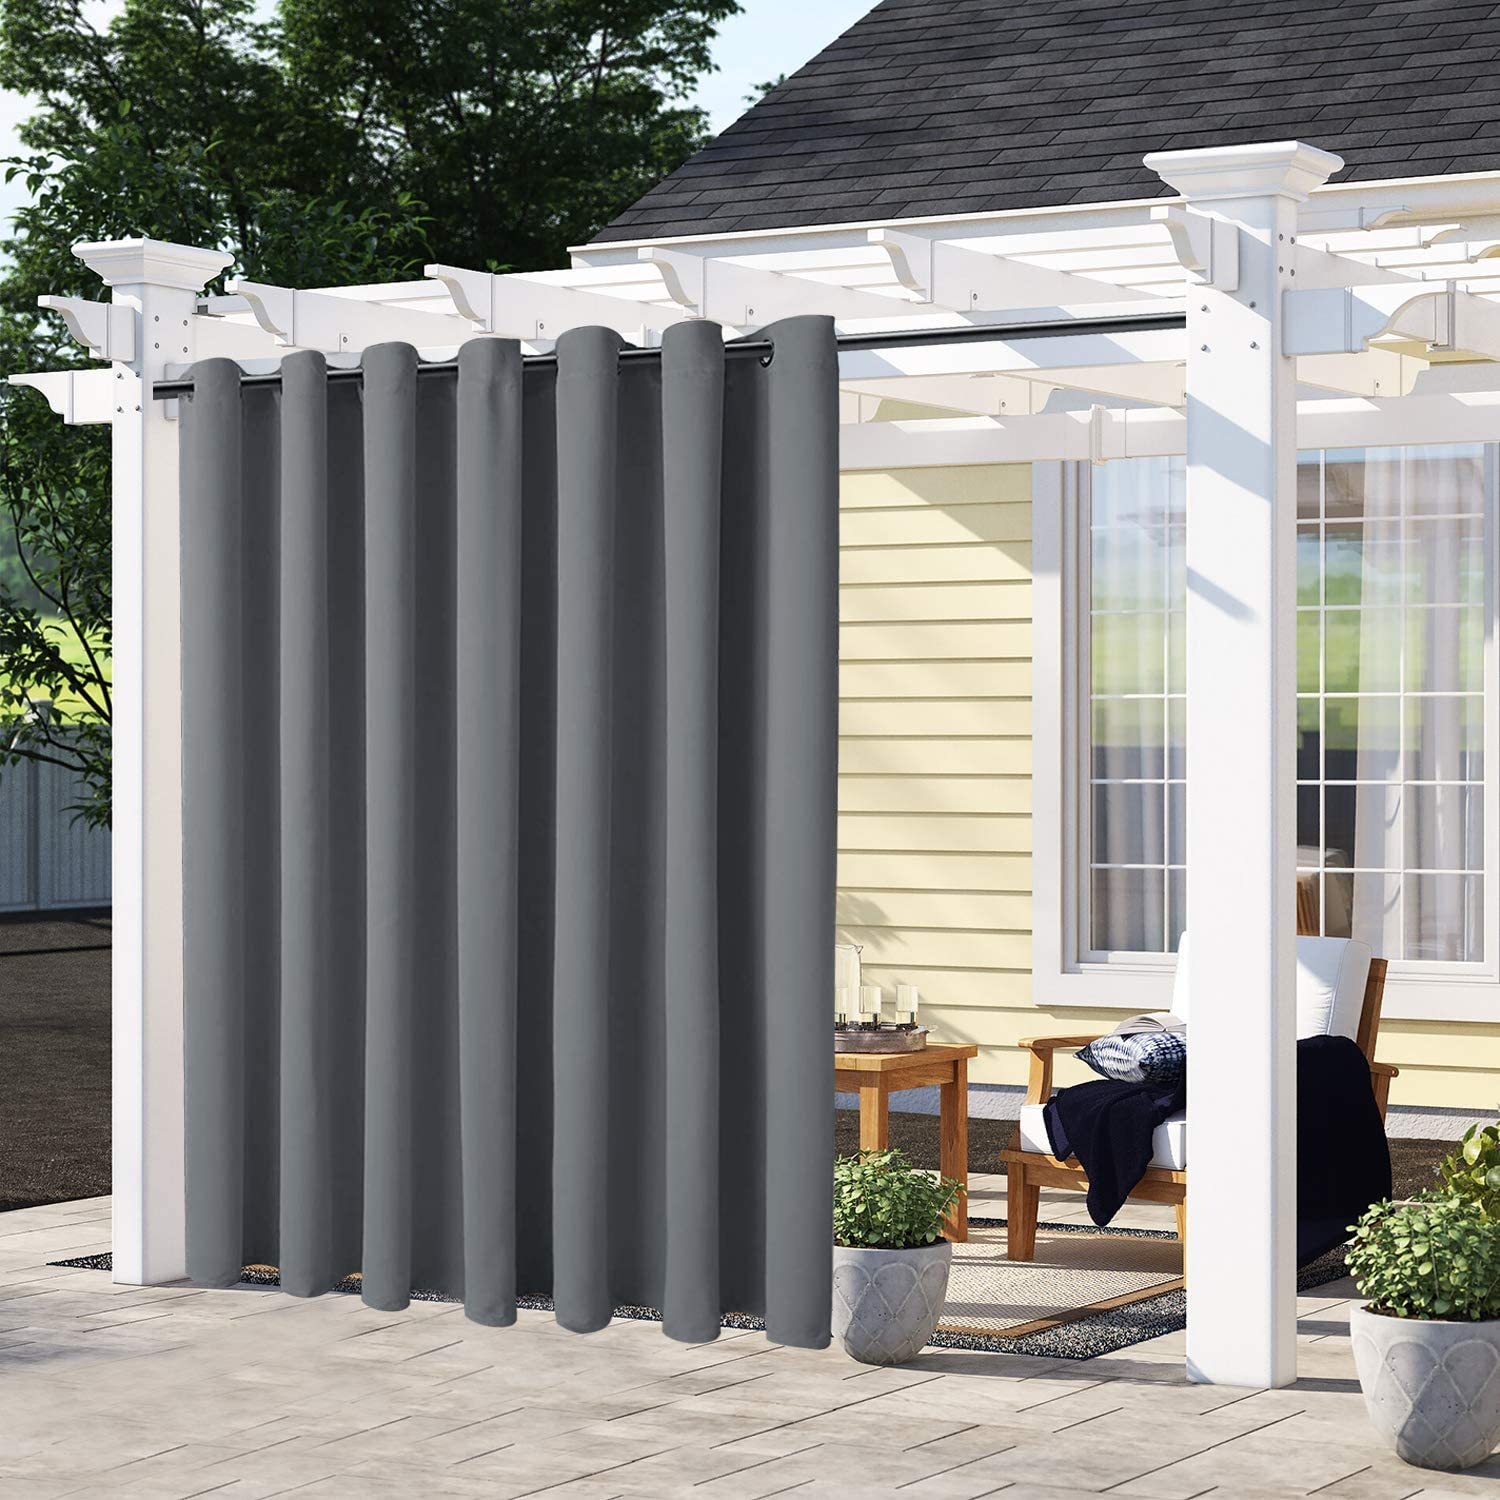 Pro Space Extra Wide Outdoor Curtains Patio - Blackout for Curta Louisville-Jefferson Many popular brands County Mall